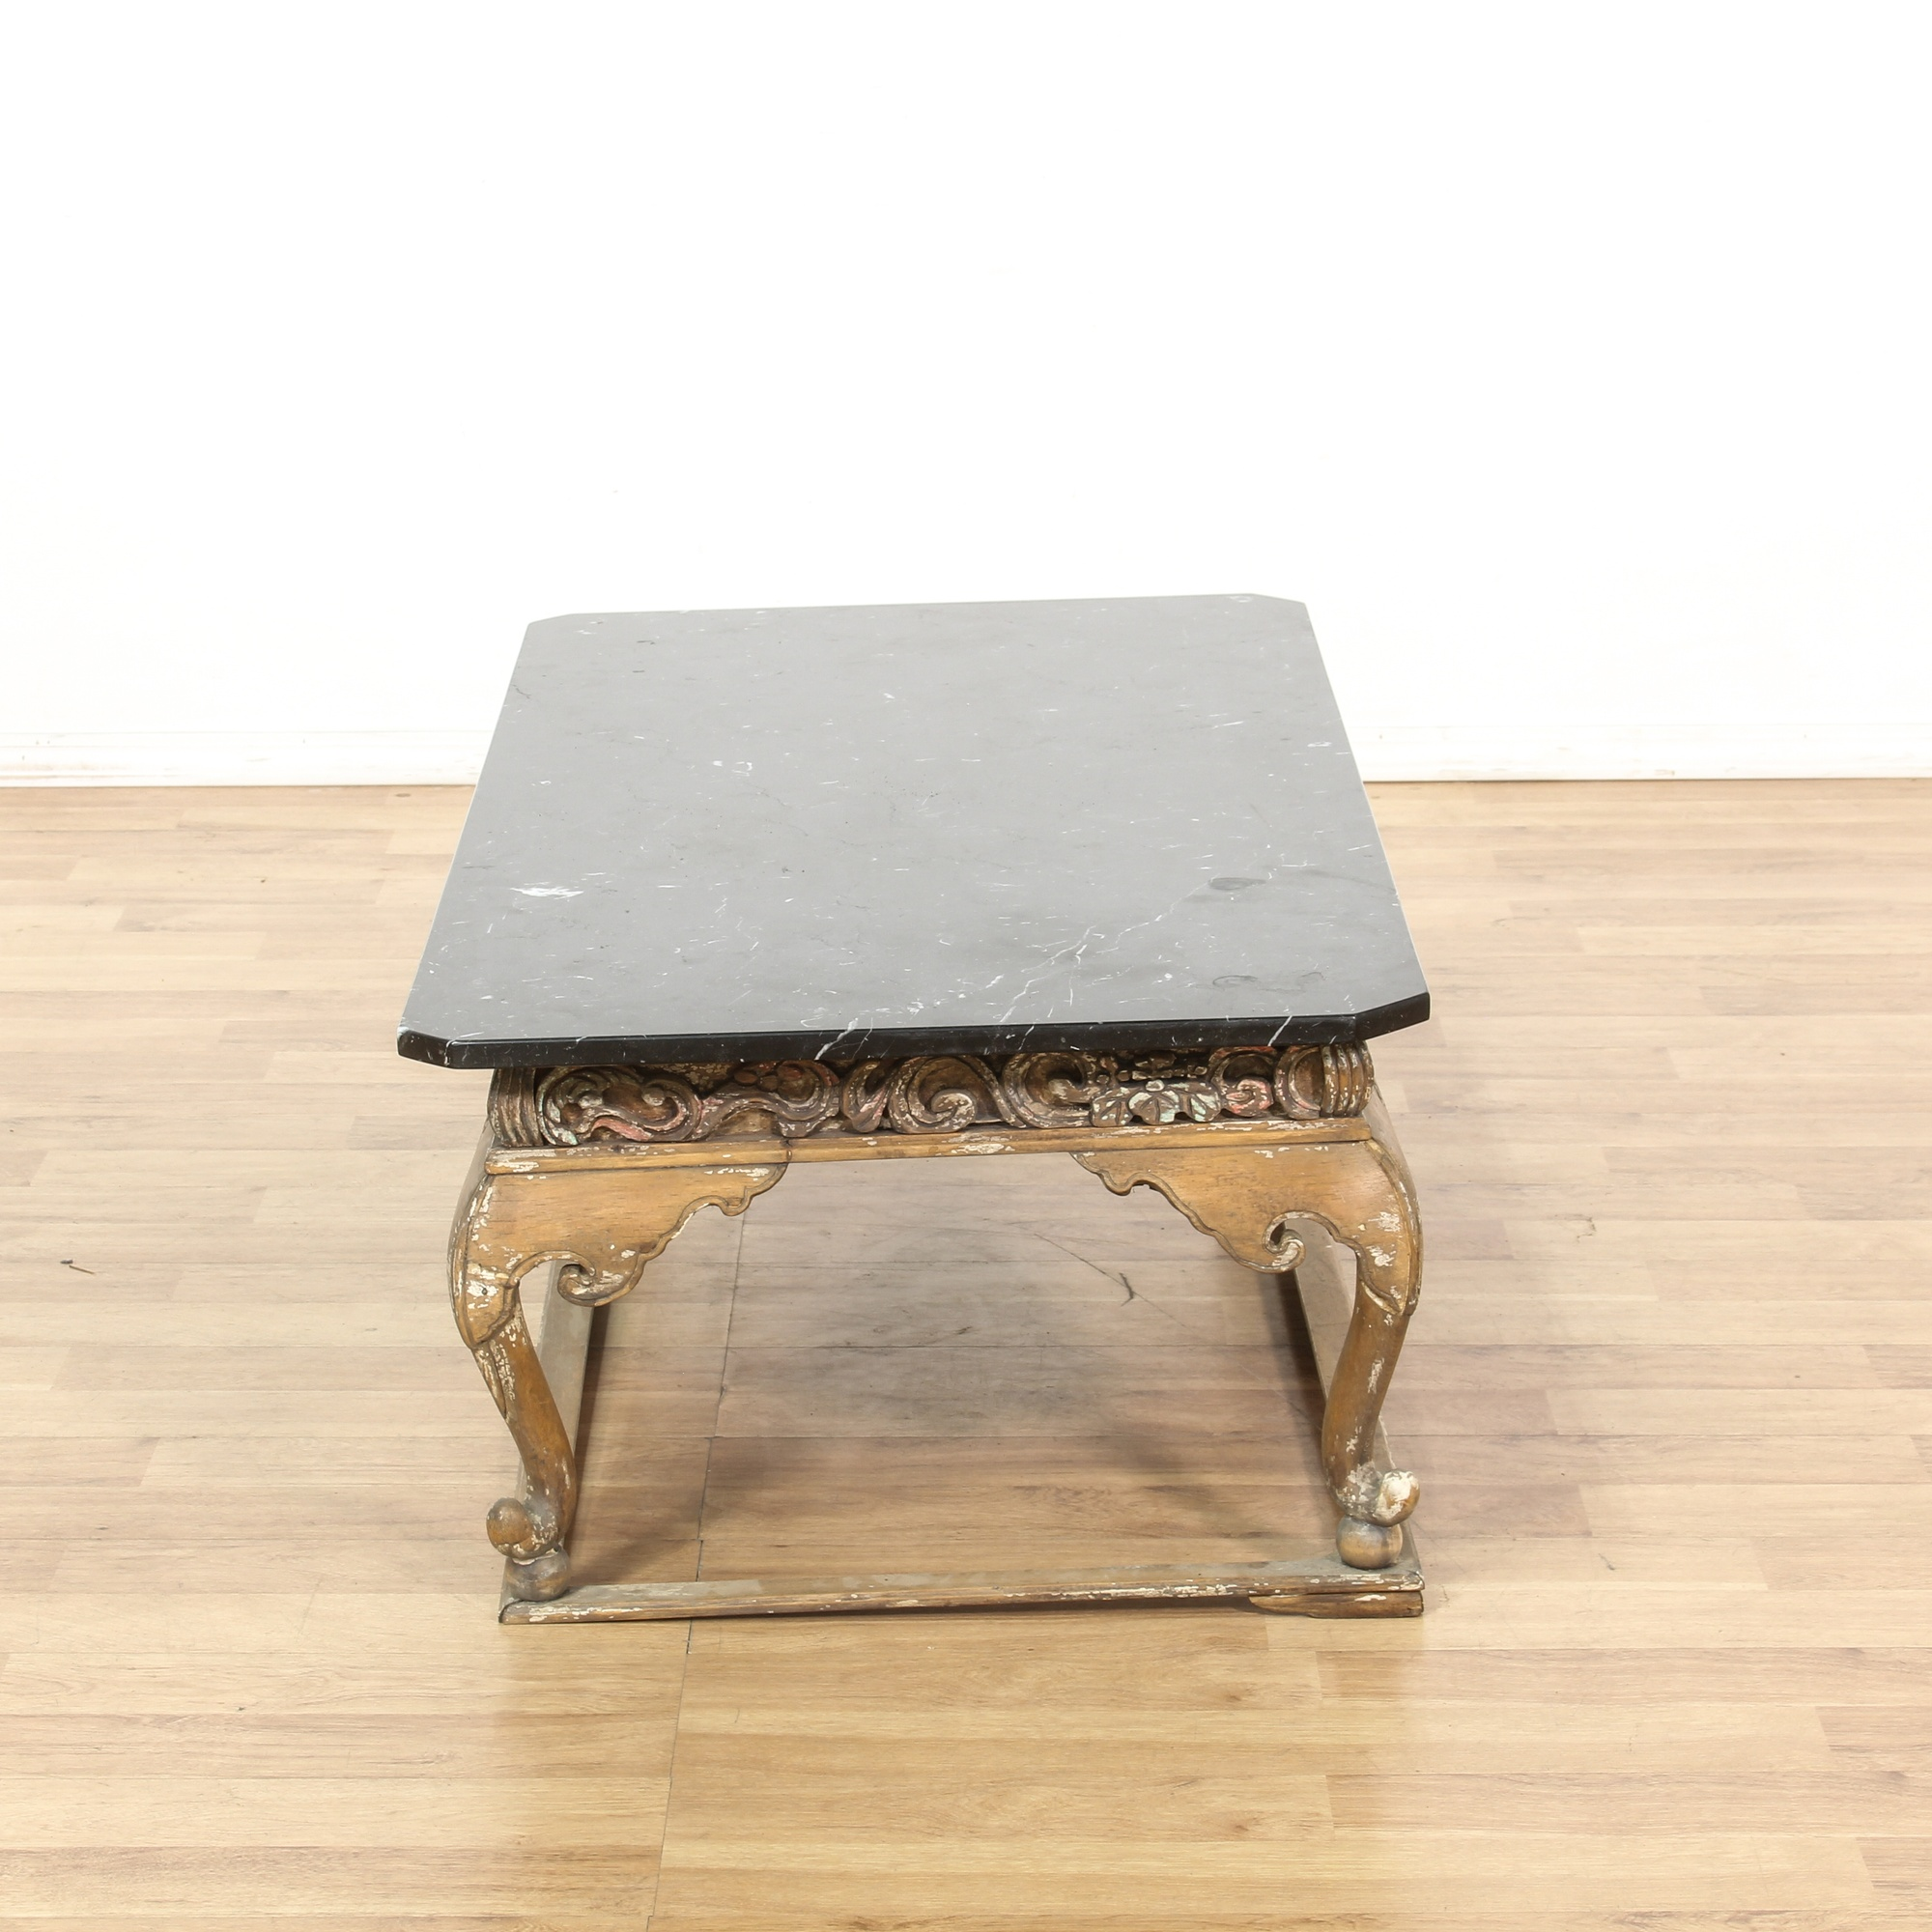 Marble Coffee Table Wood Legs: Chinese Carved Wood Black Marble Top Coffee Table